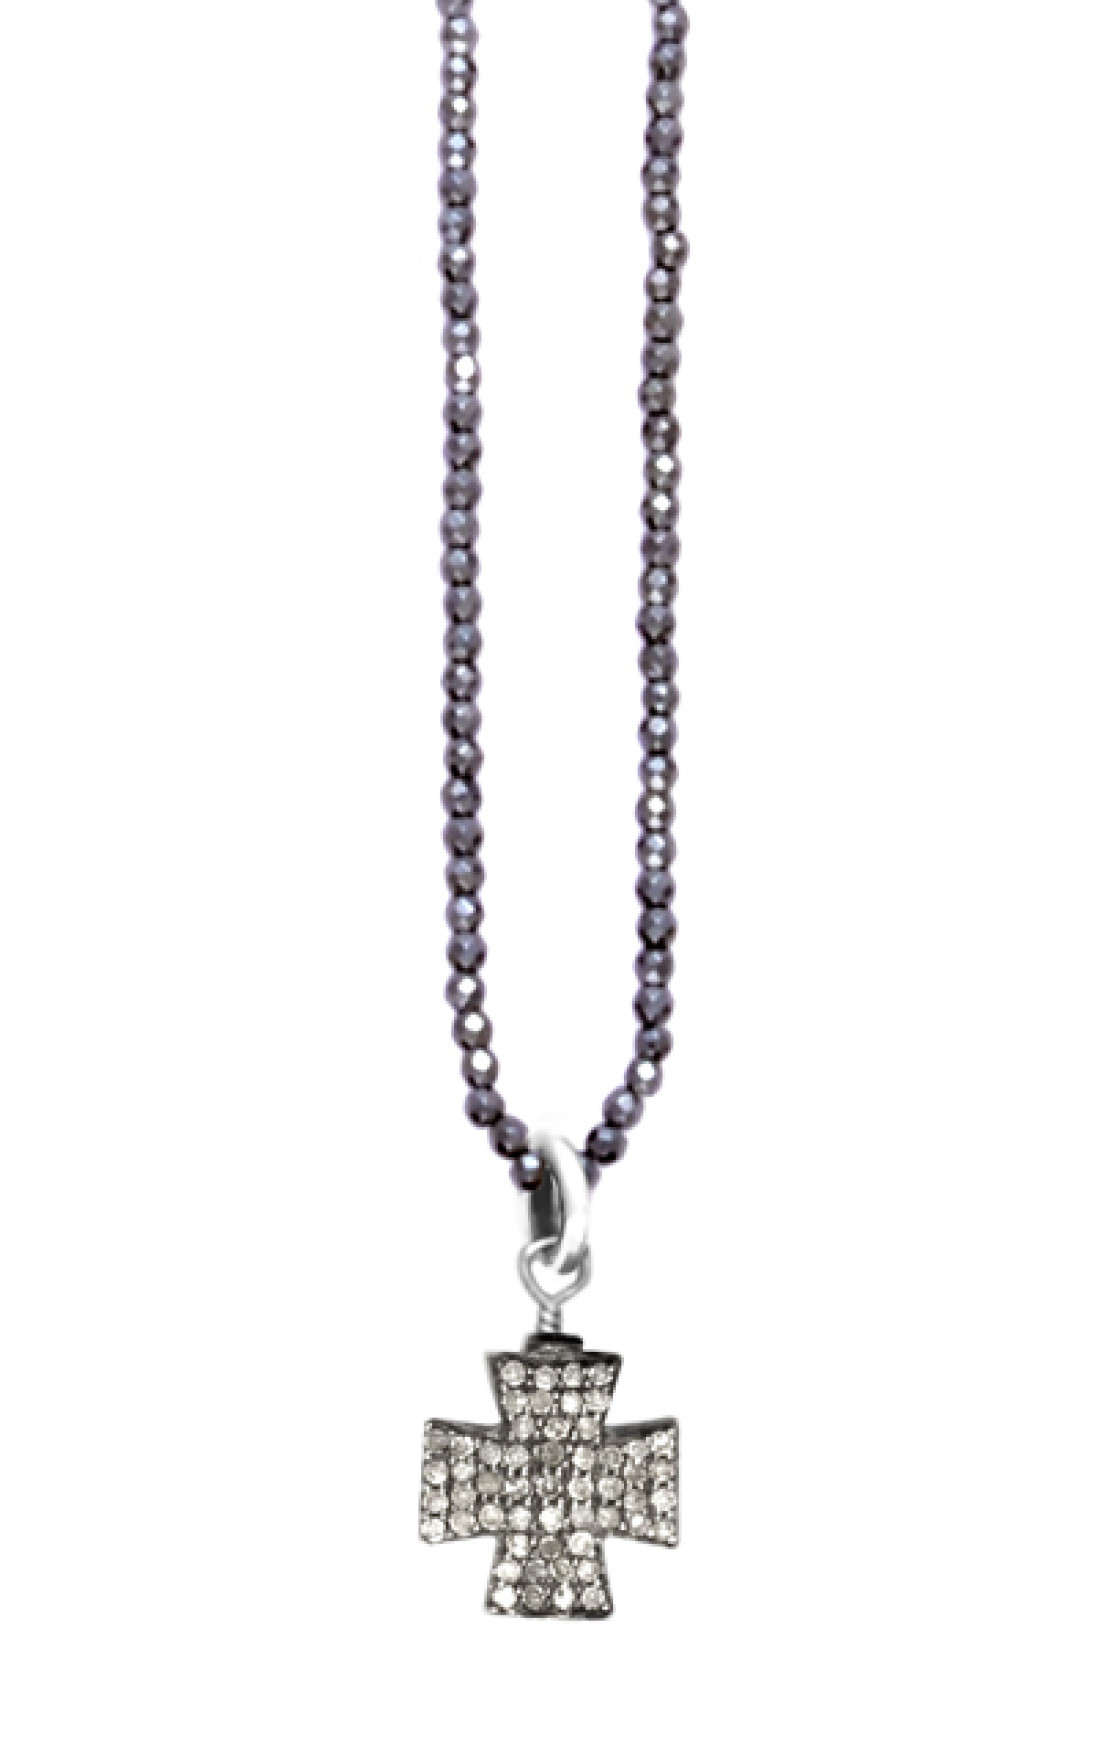 King baby jewellery hematite necklace with pave diamond cross king baby hematite necklace with pave diamond cross k56 5111 aloadofball Image collections